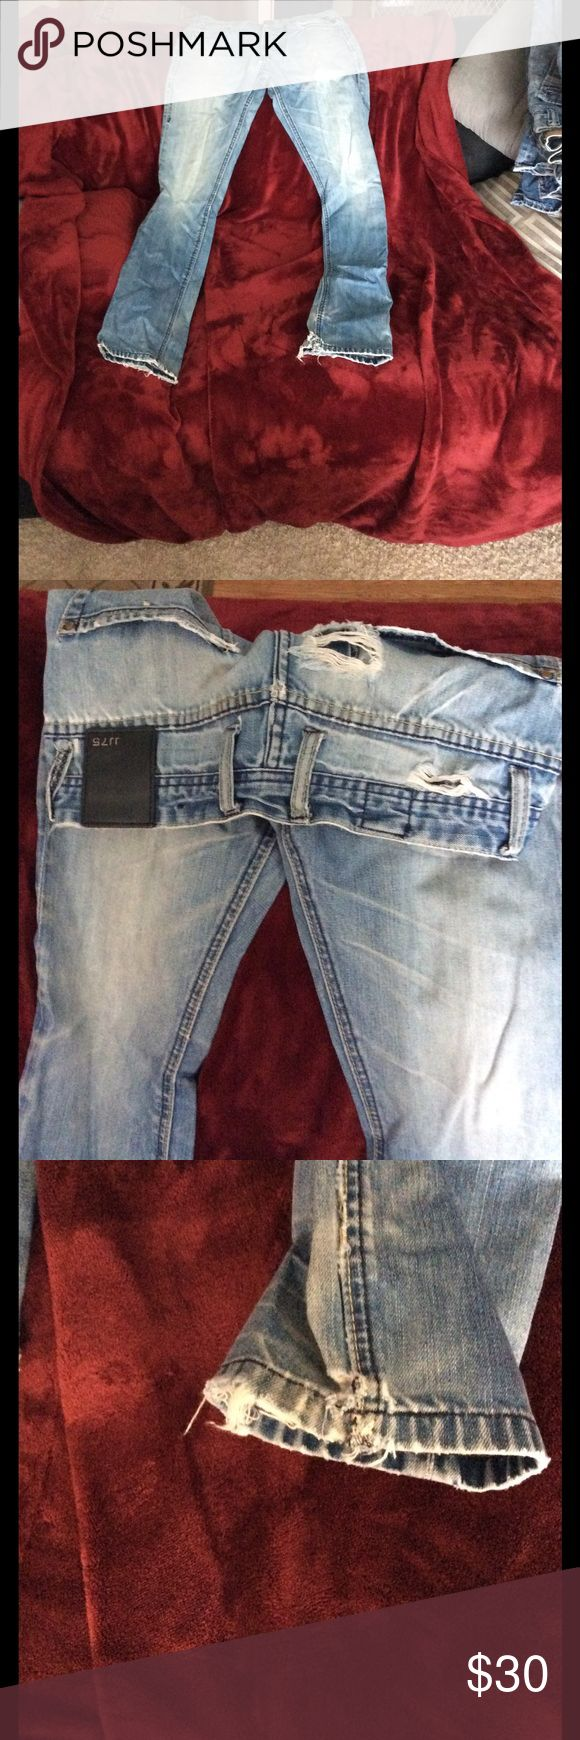 Jack and jones 29 x 32 Wear as shown, great jeans Jack and Jones Jeans Straight